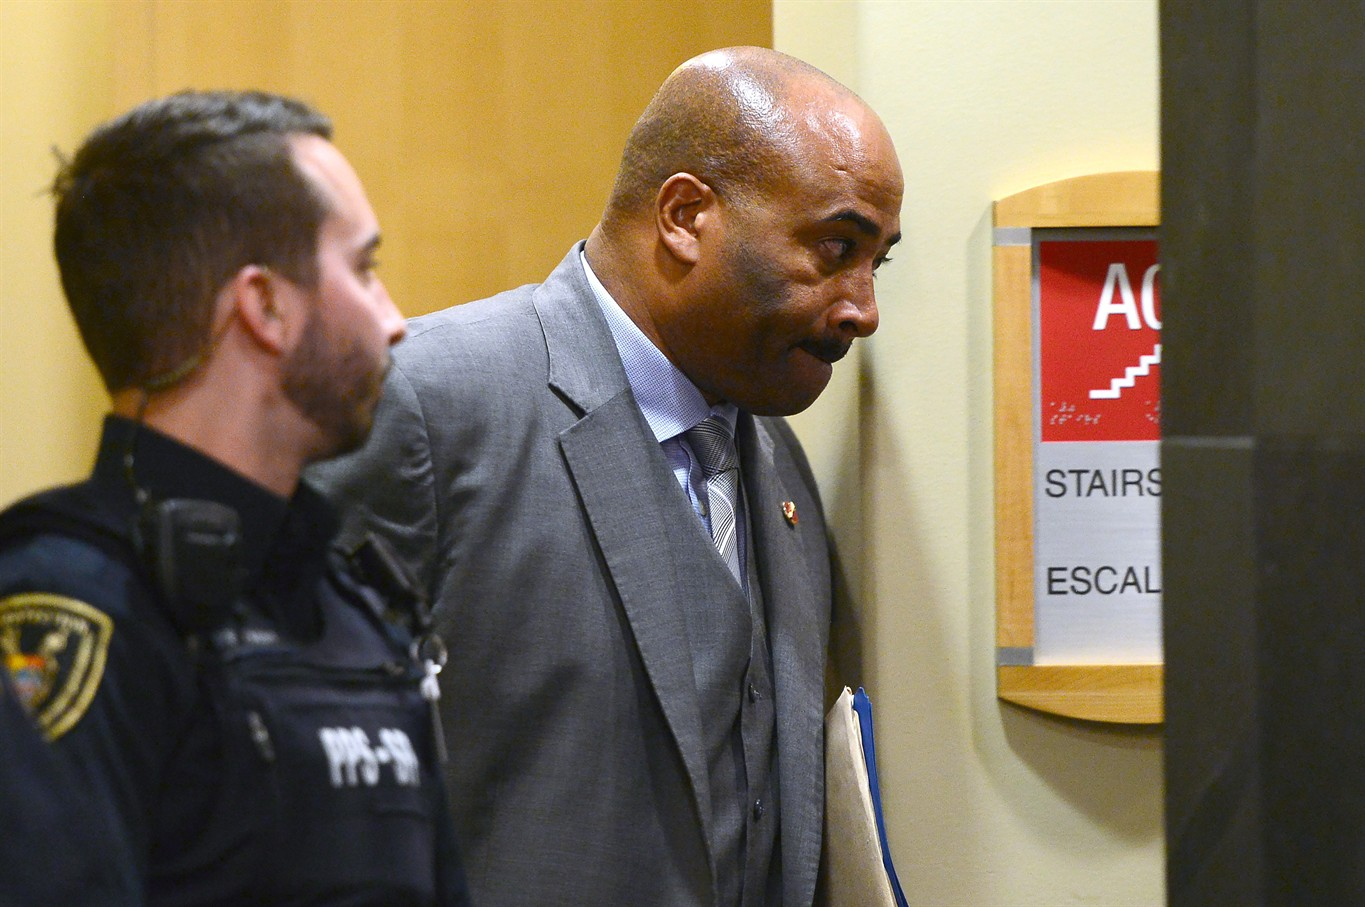 senate committee confronts one of their own over sexual senator don meredith leaves a senate committee in ottawa on tuesday 4 2017 sen don meredith is facing a committee of his peers this morning as the